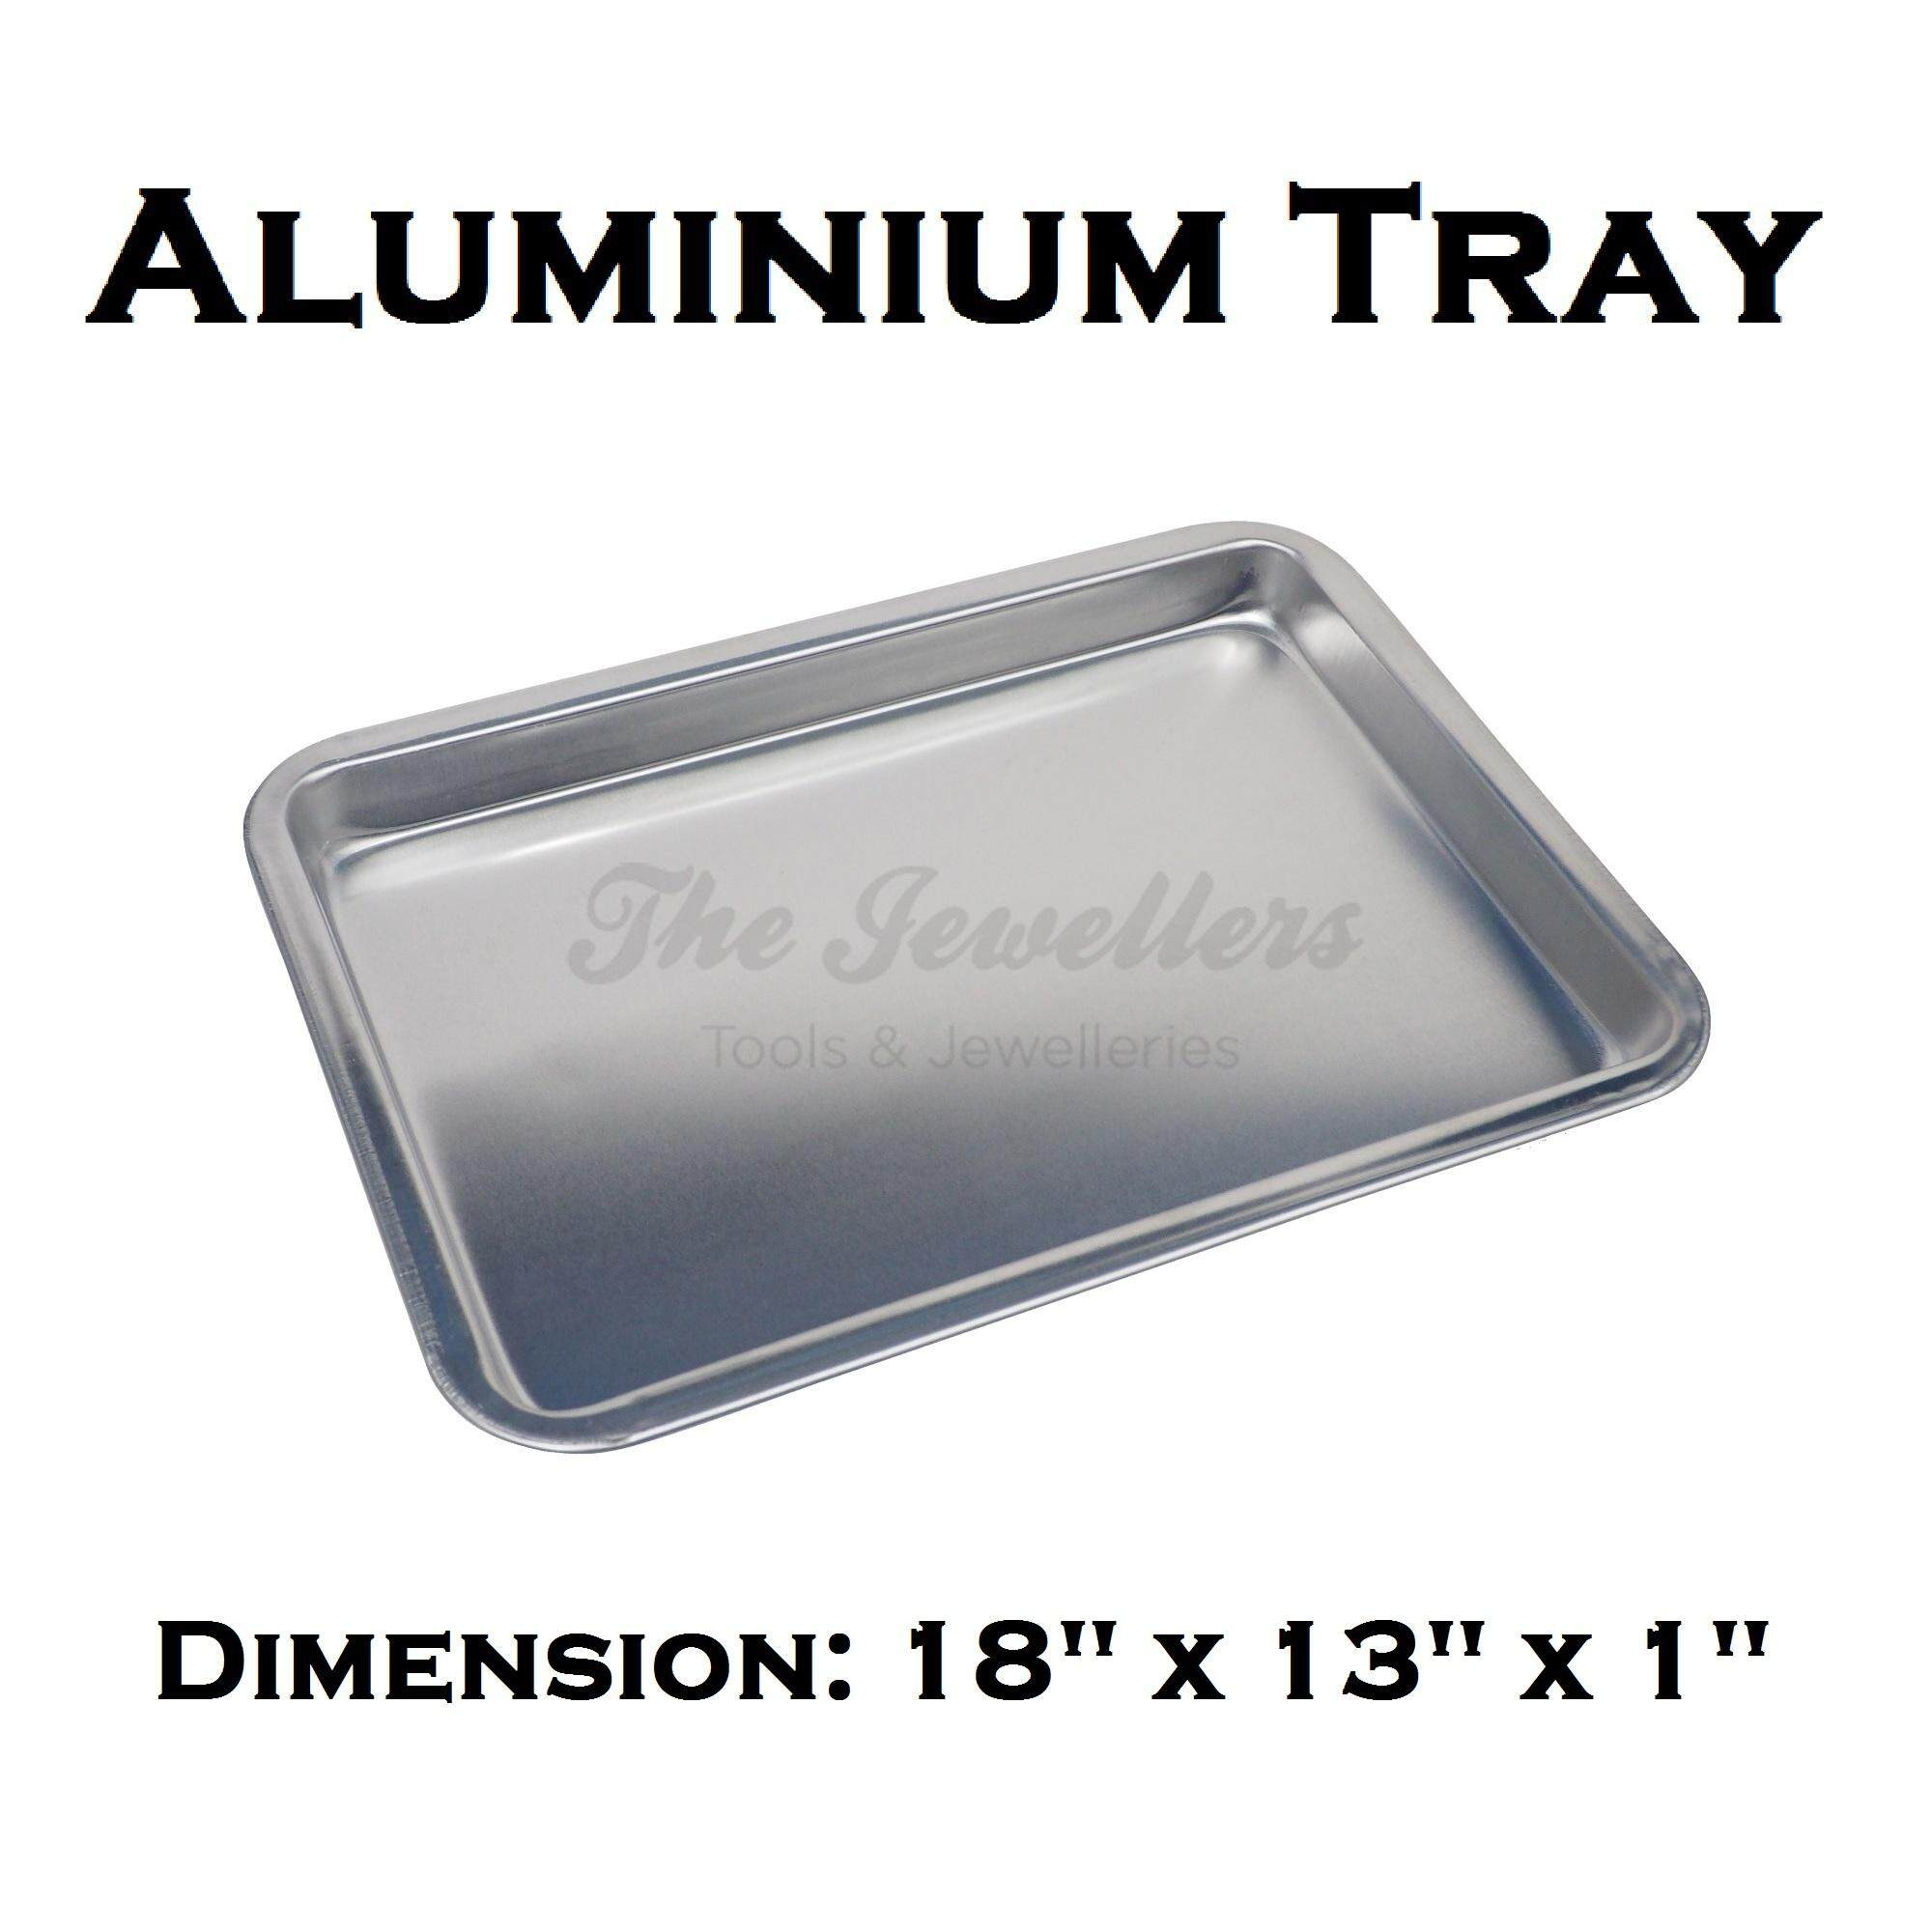 "Aluminium Tray Bakeware Oven Sheet, Baking Pan Tray for Cookies, Pizza, and Cakes Dimension: 18"" x 13"" x 1"" inch"